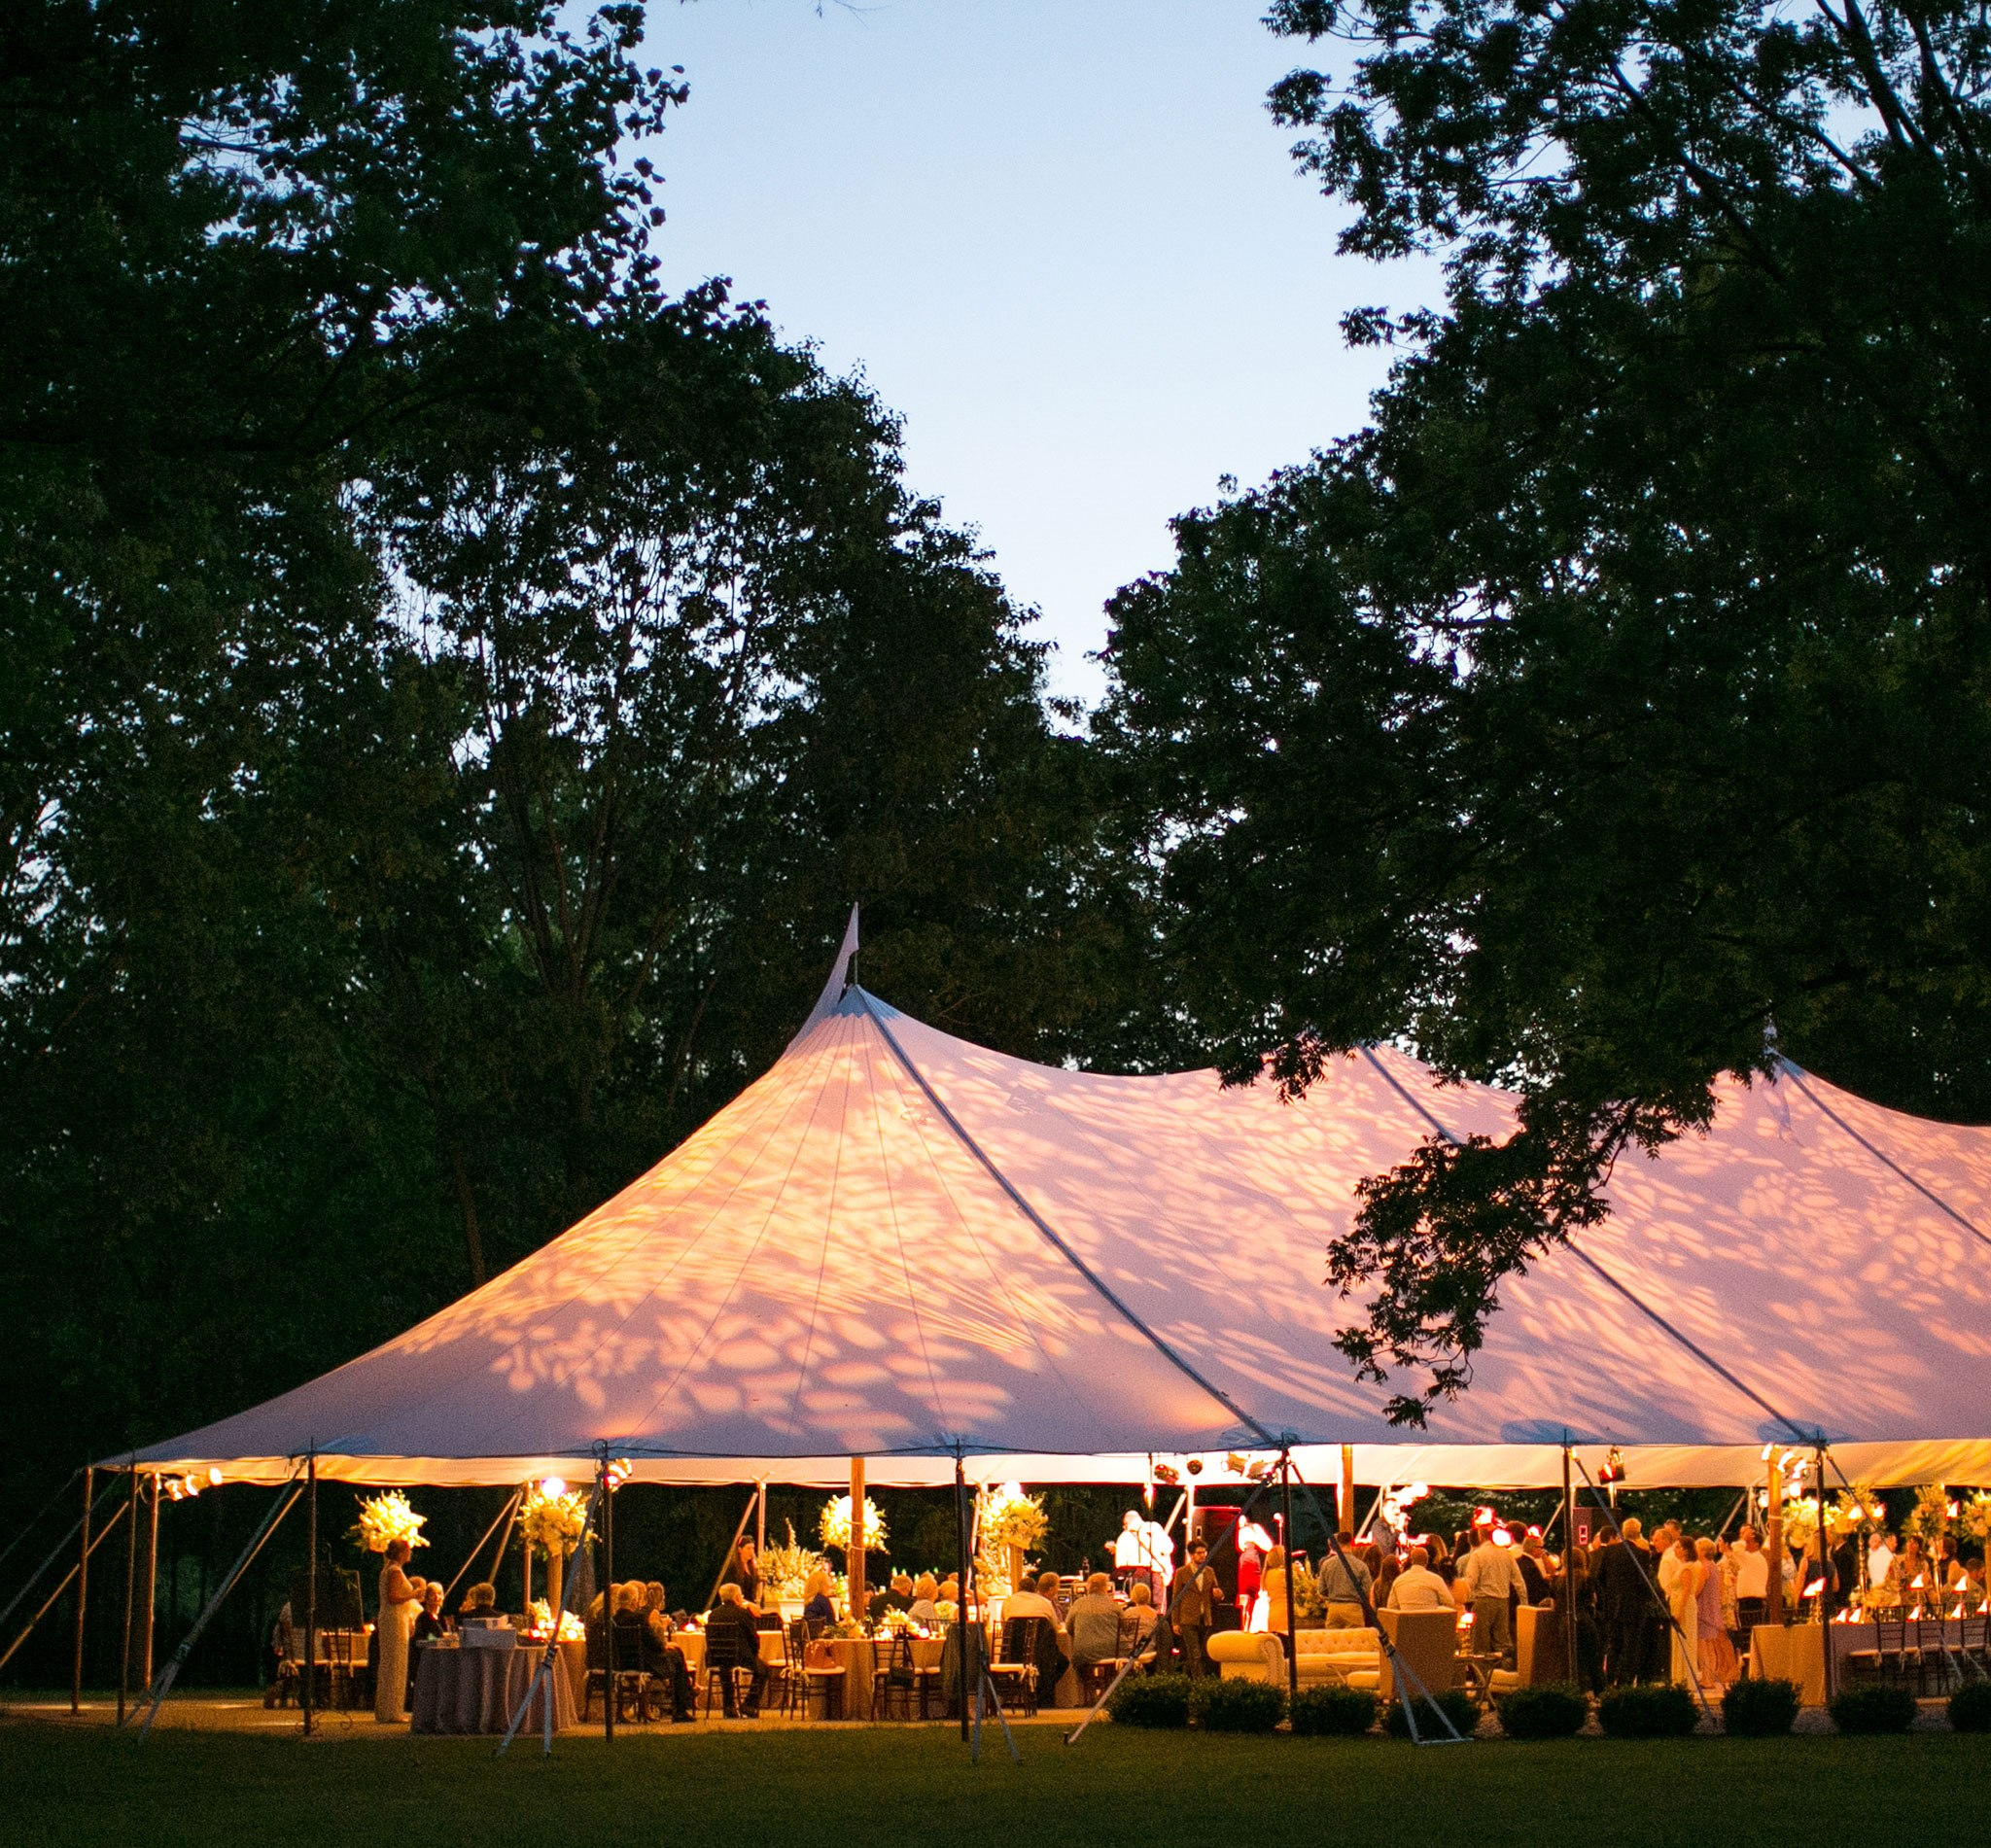 Tidewater Sailcloth Tents & All Occasions Event Rental